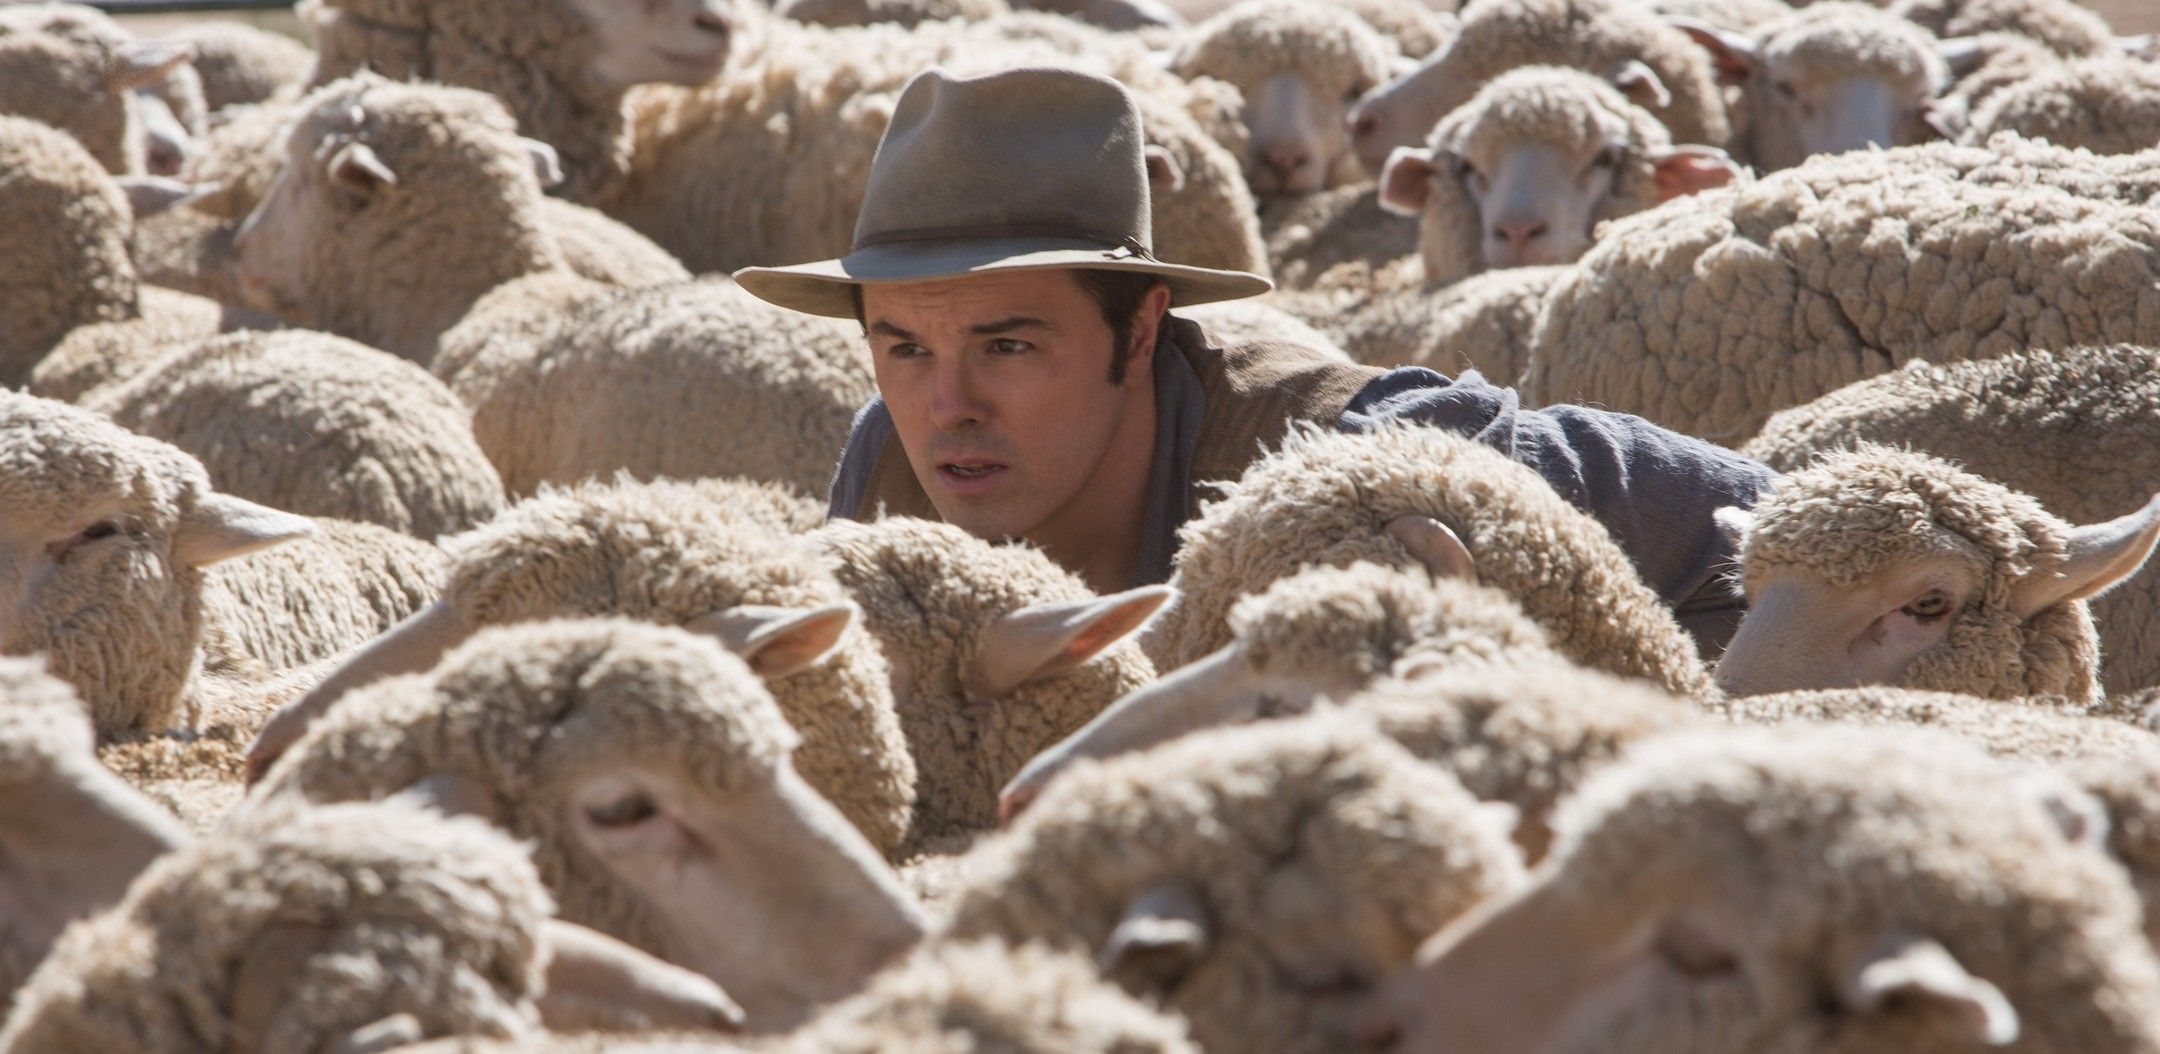 Seth MacFarlane amongst some sheep